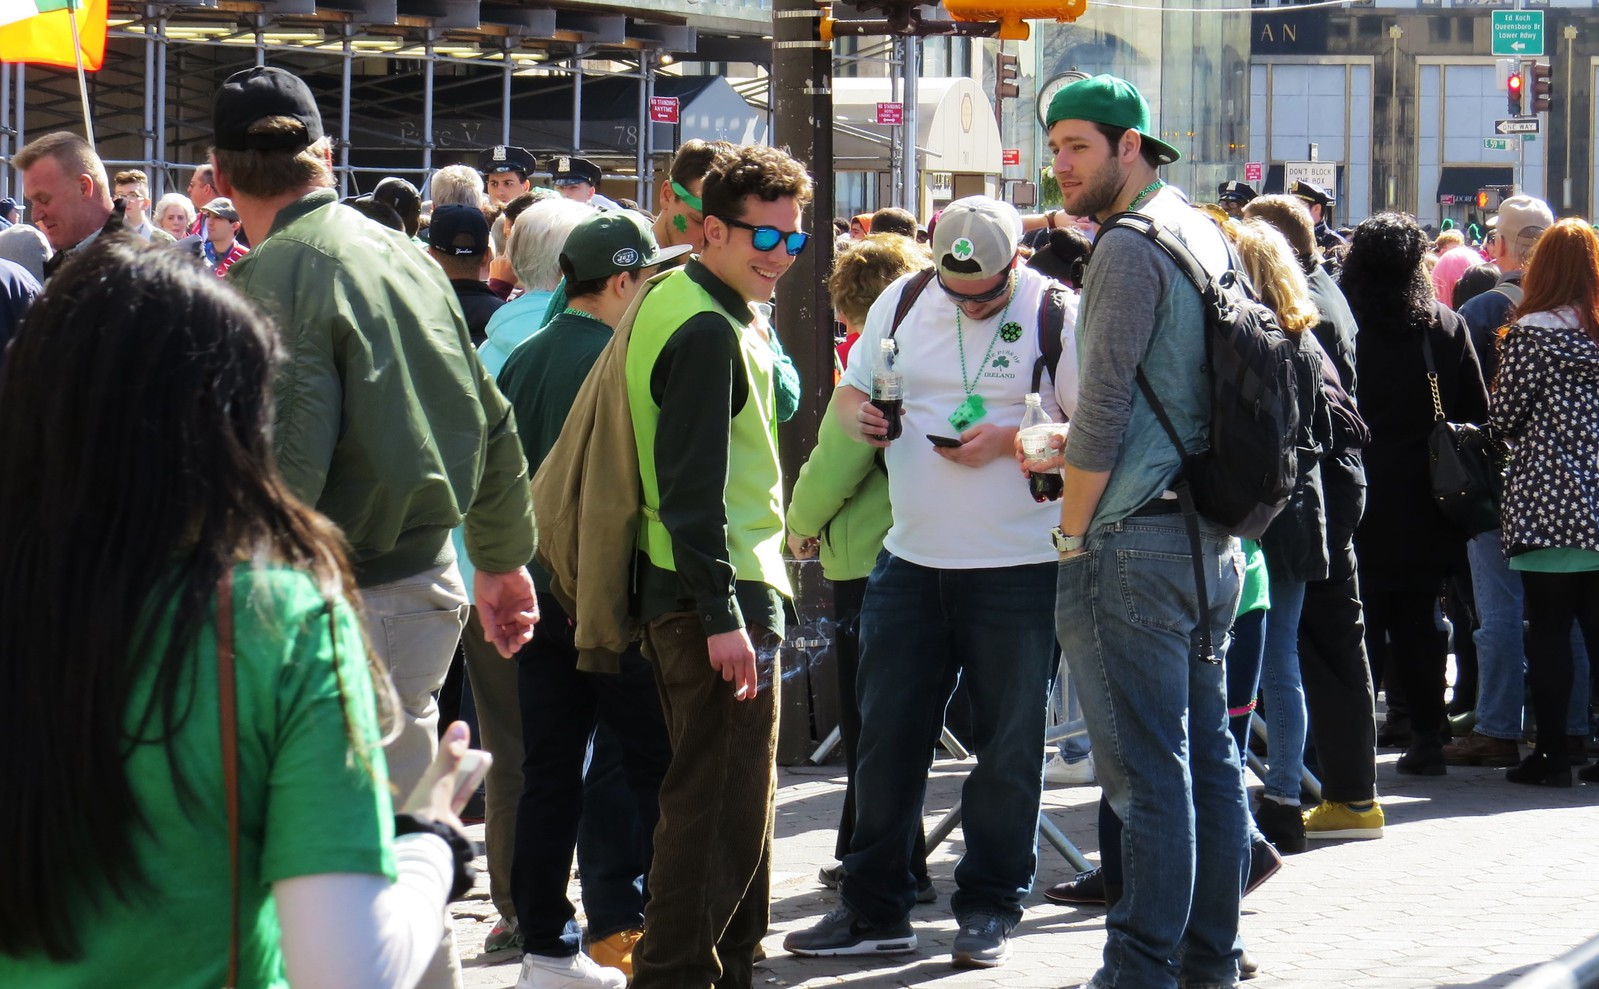 St.Patrick's Day Parade, New York